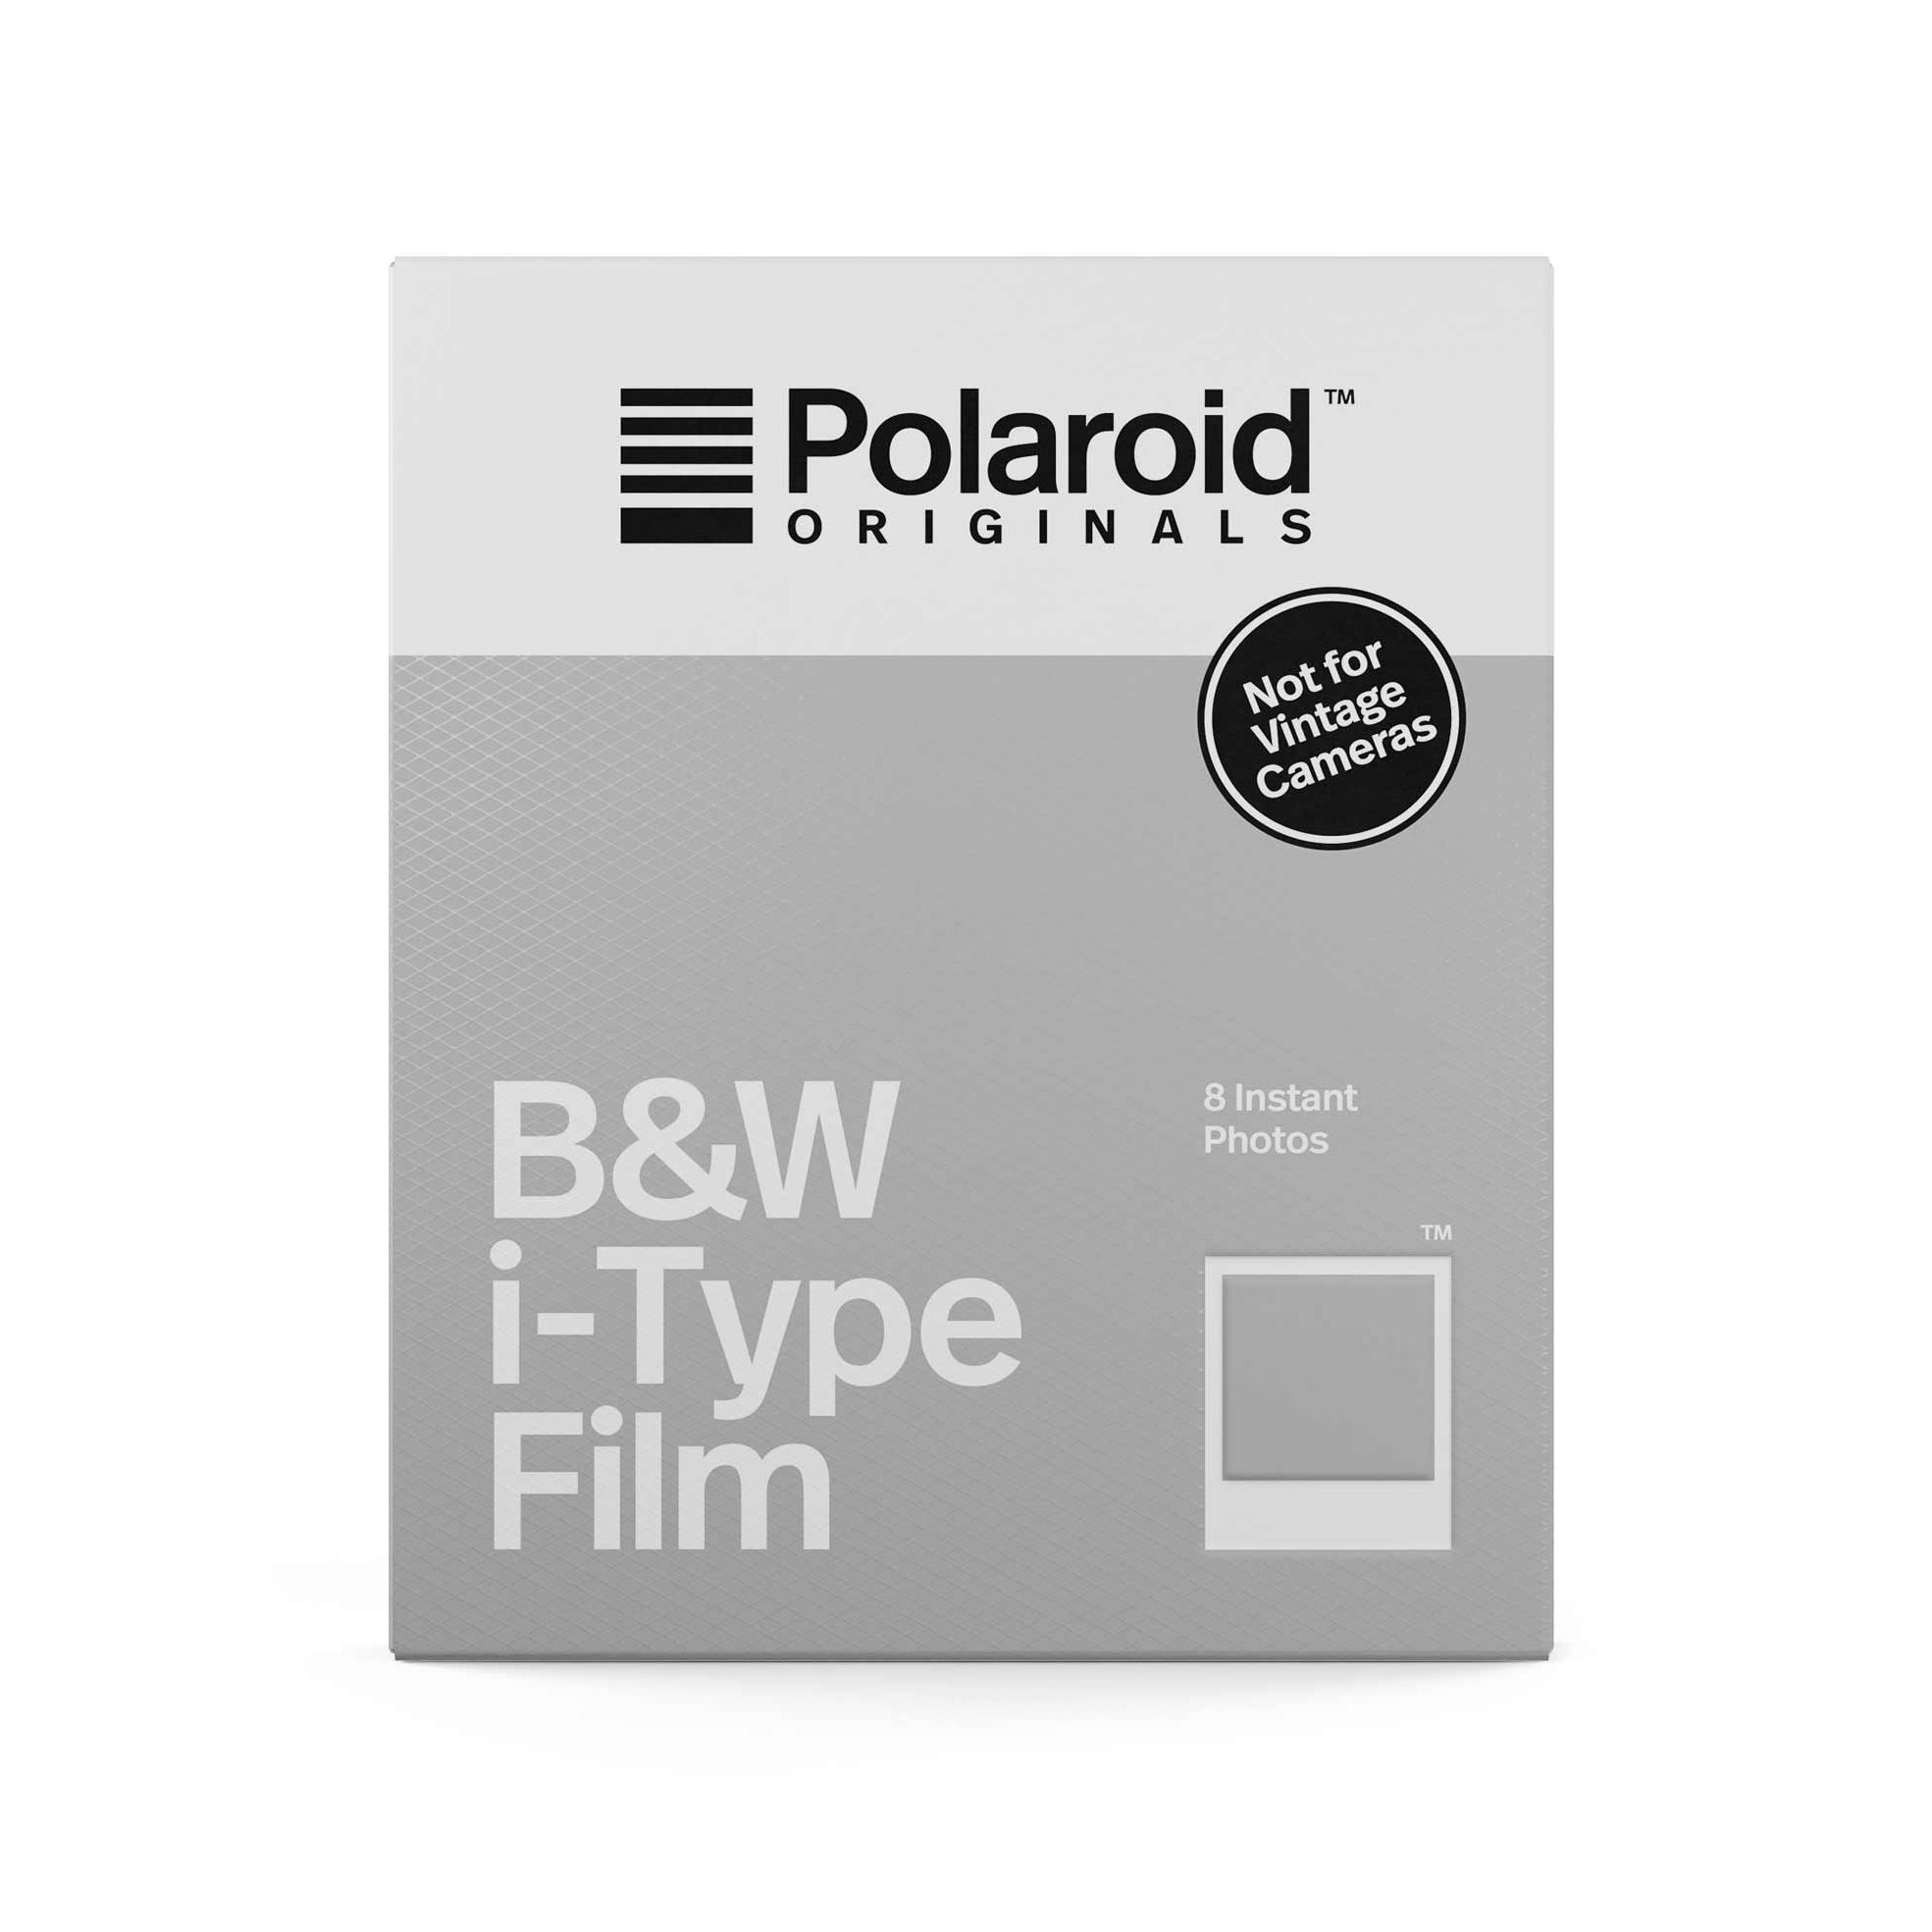 Polaroid Black And White I-type Film White